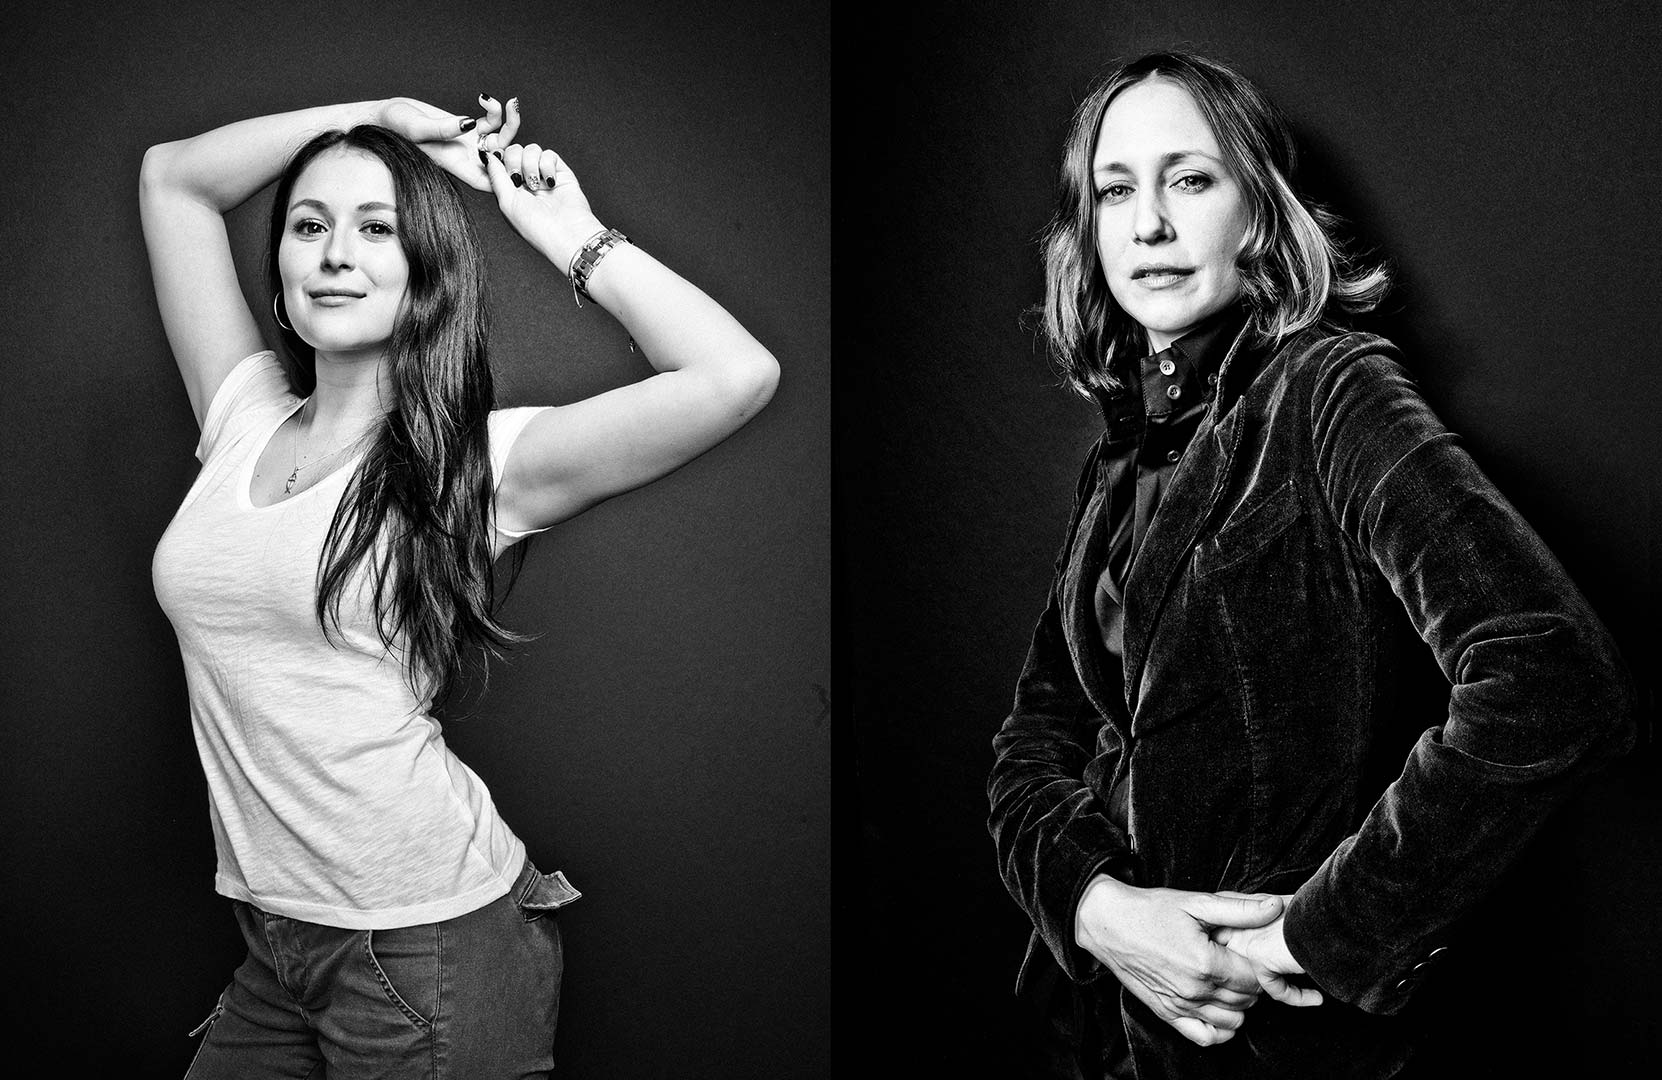 black & white portraits of actresses Alexa Vega and Vera Farmiga